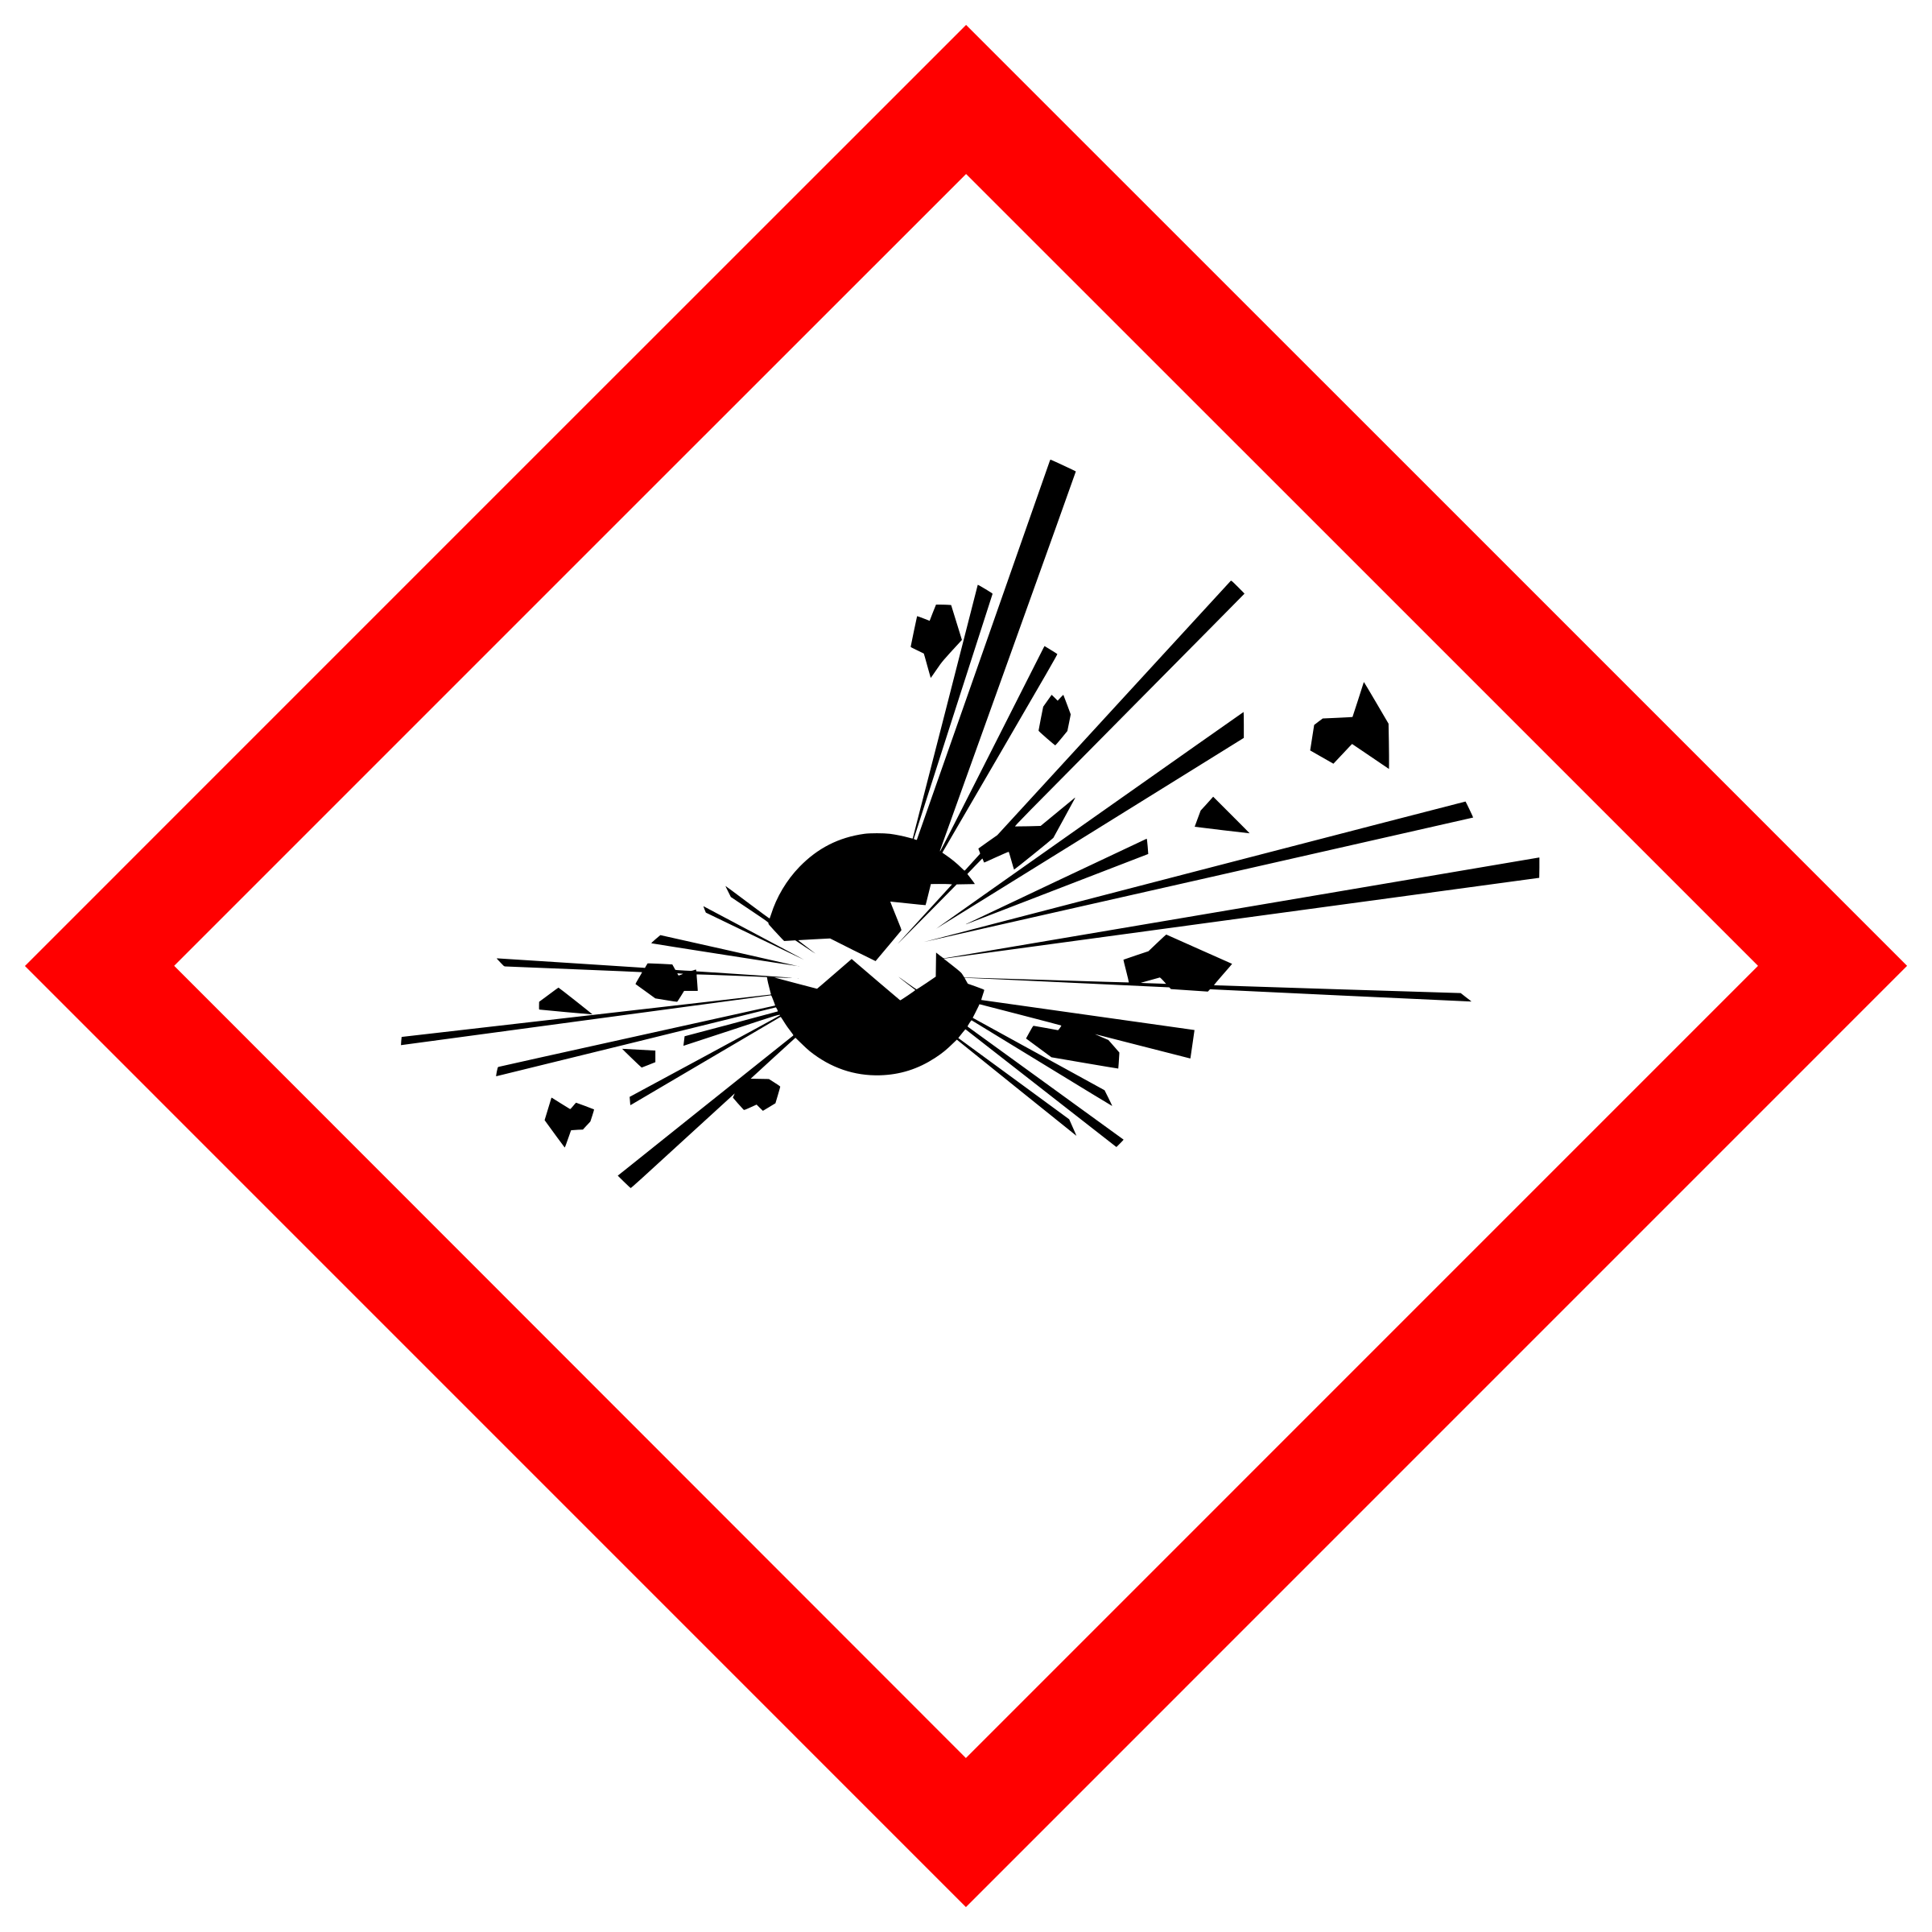 svg black and white Chemical clipart chemical contamination. Ghs pictogram for explosive.